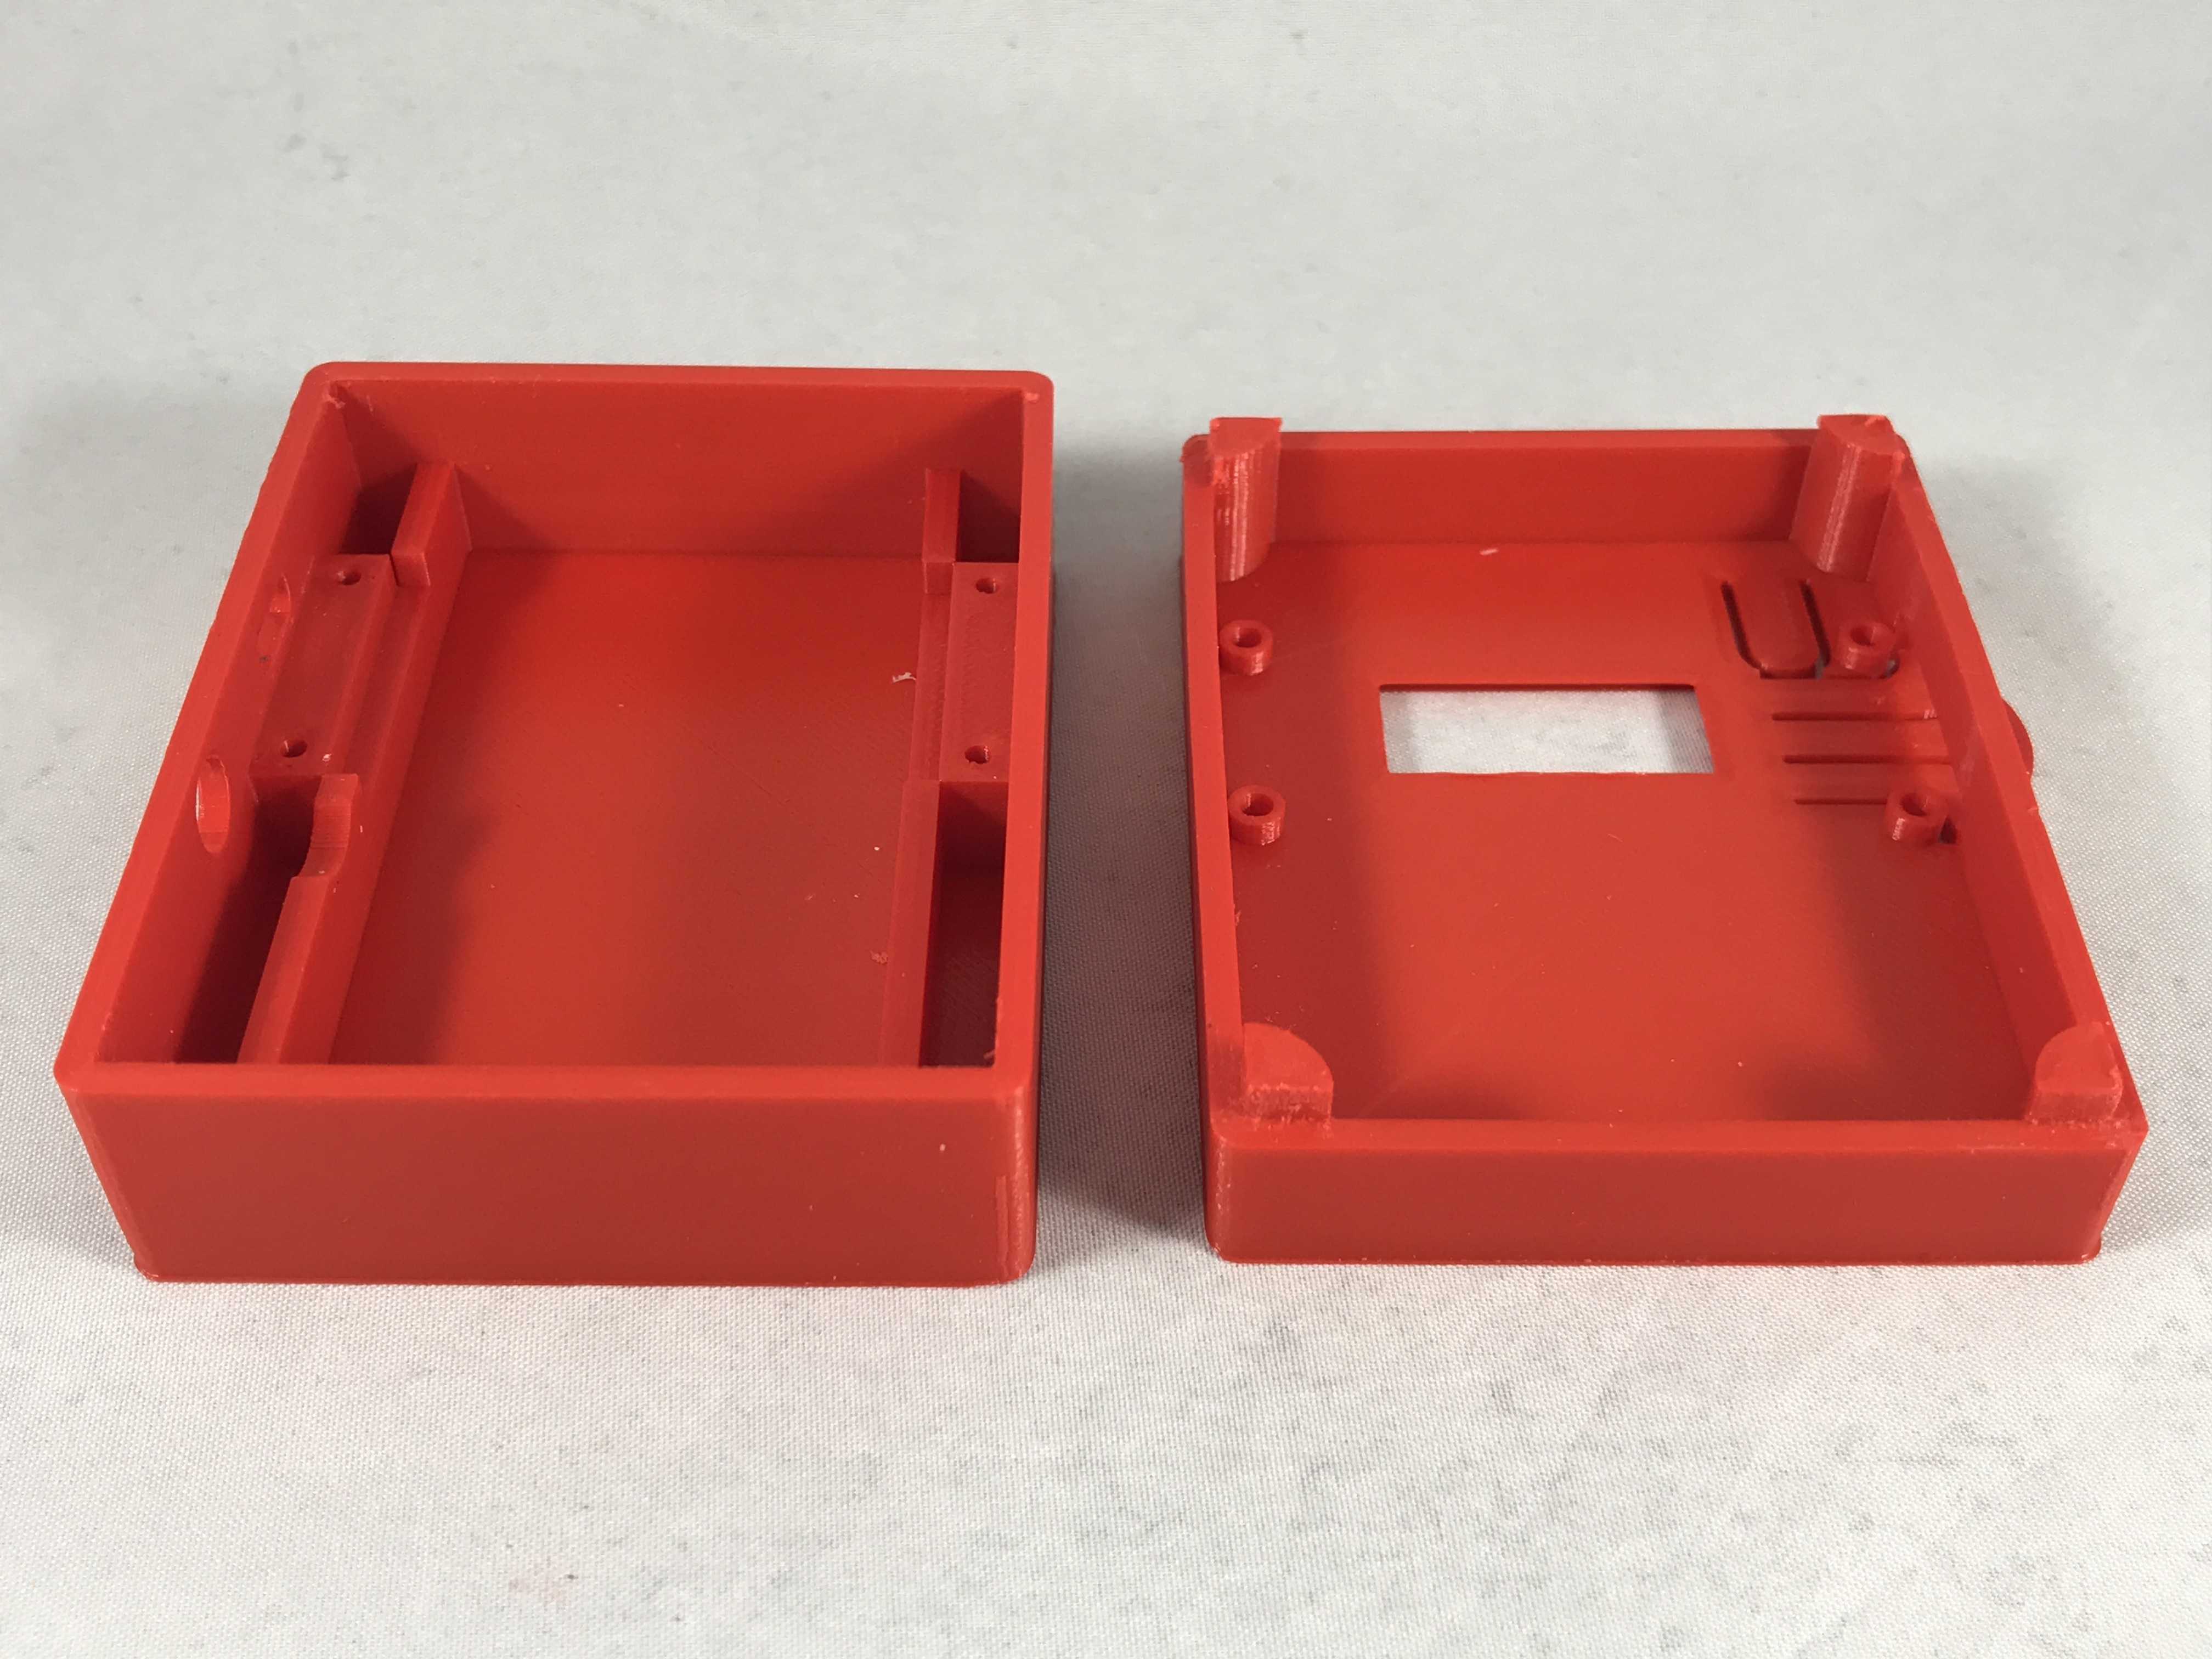 Picture of Print and Purchase the Parts.